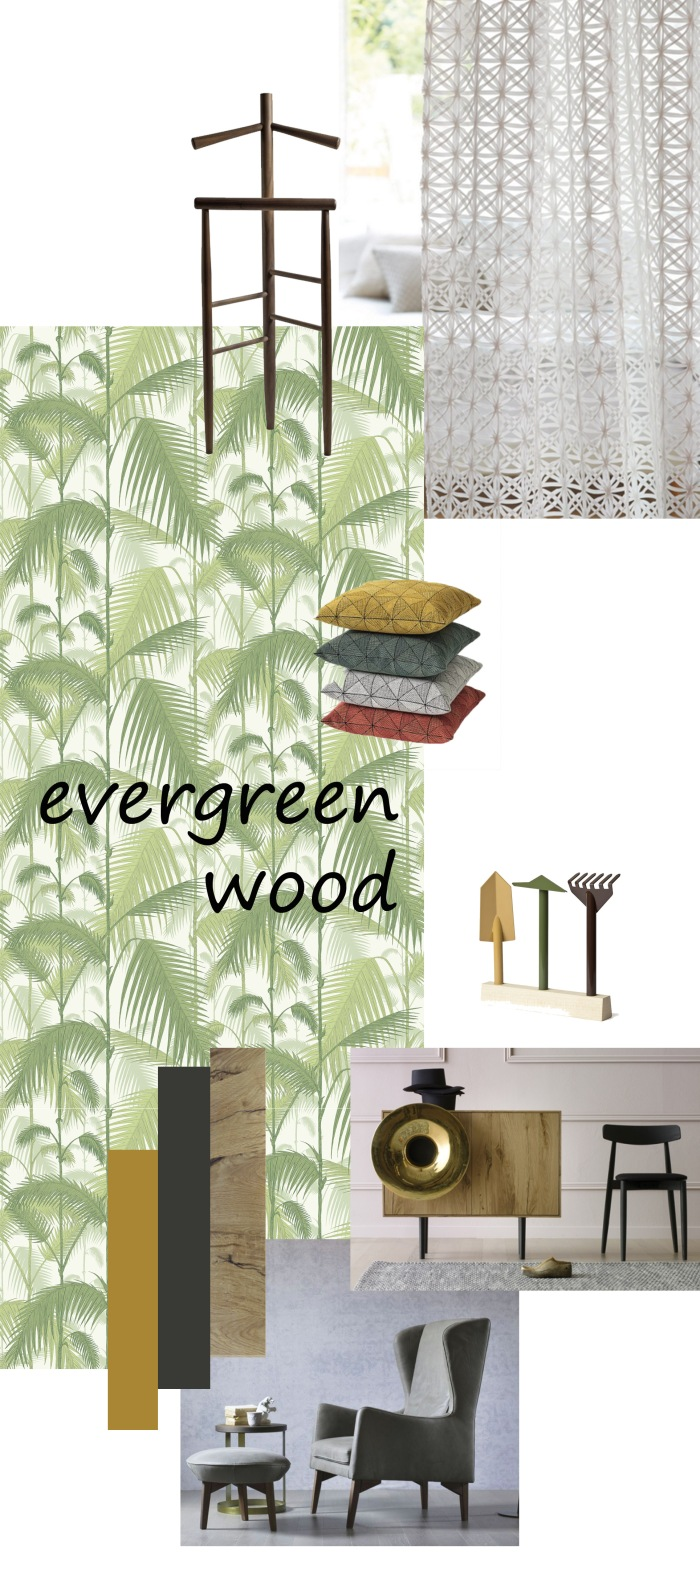 naturalmood-evergreen